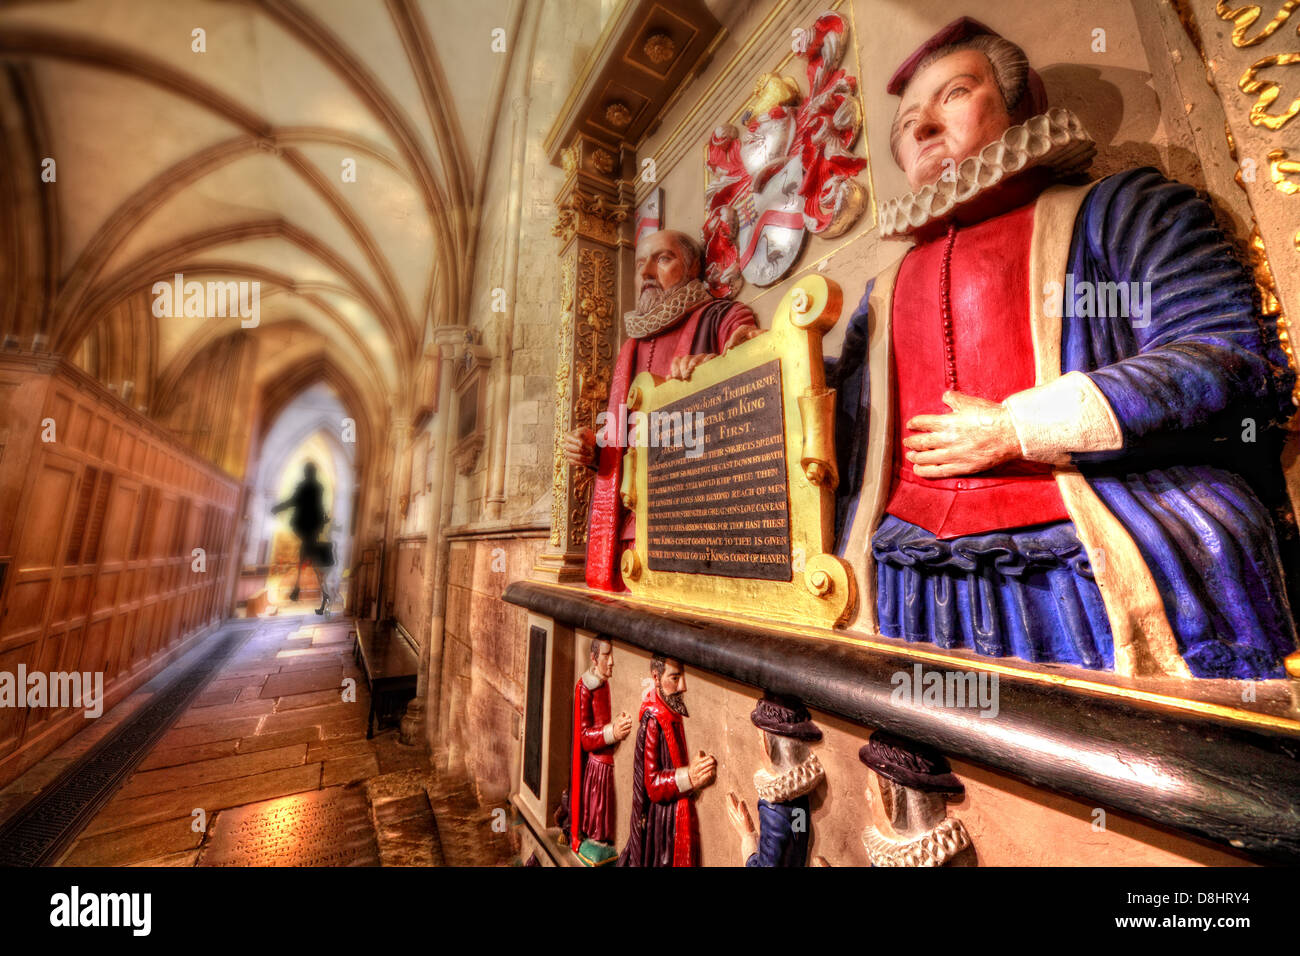 Southwark Cathedral interior London, the Tre-hearne statue with a woman in the distance - Stock Image